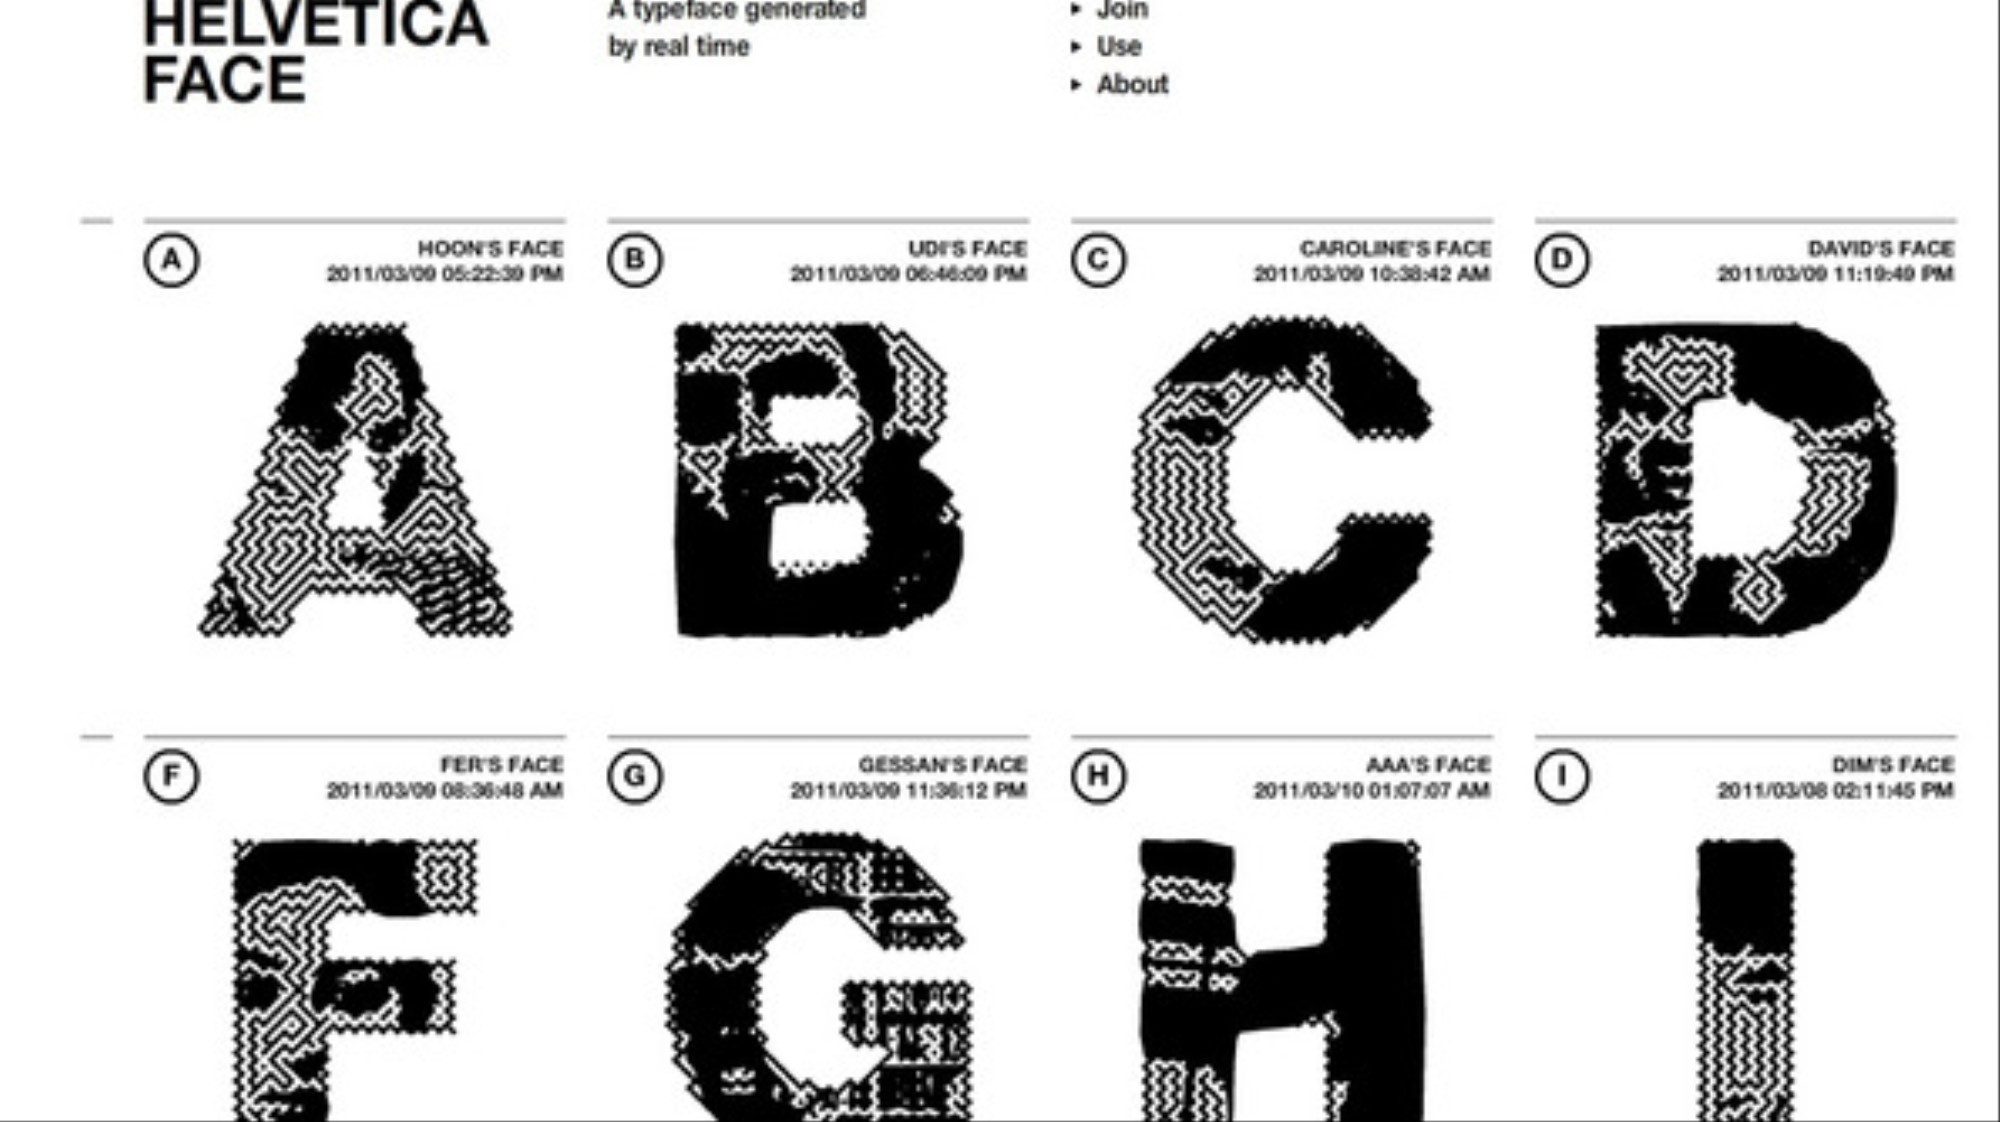 Helvetica Face: Your Face As A Font - VICE